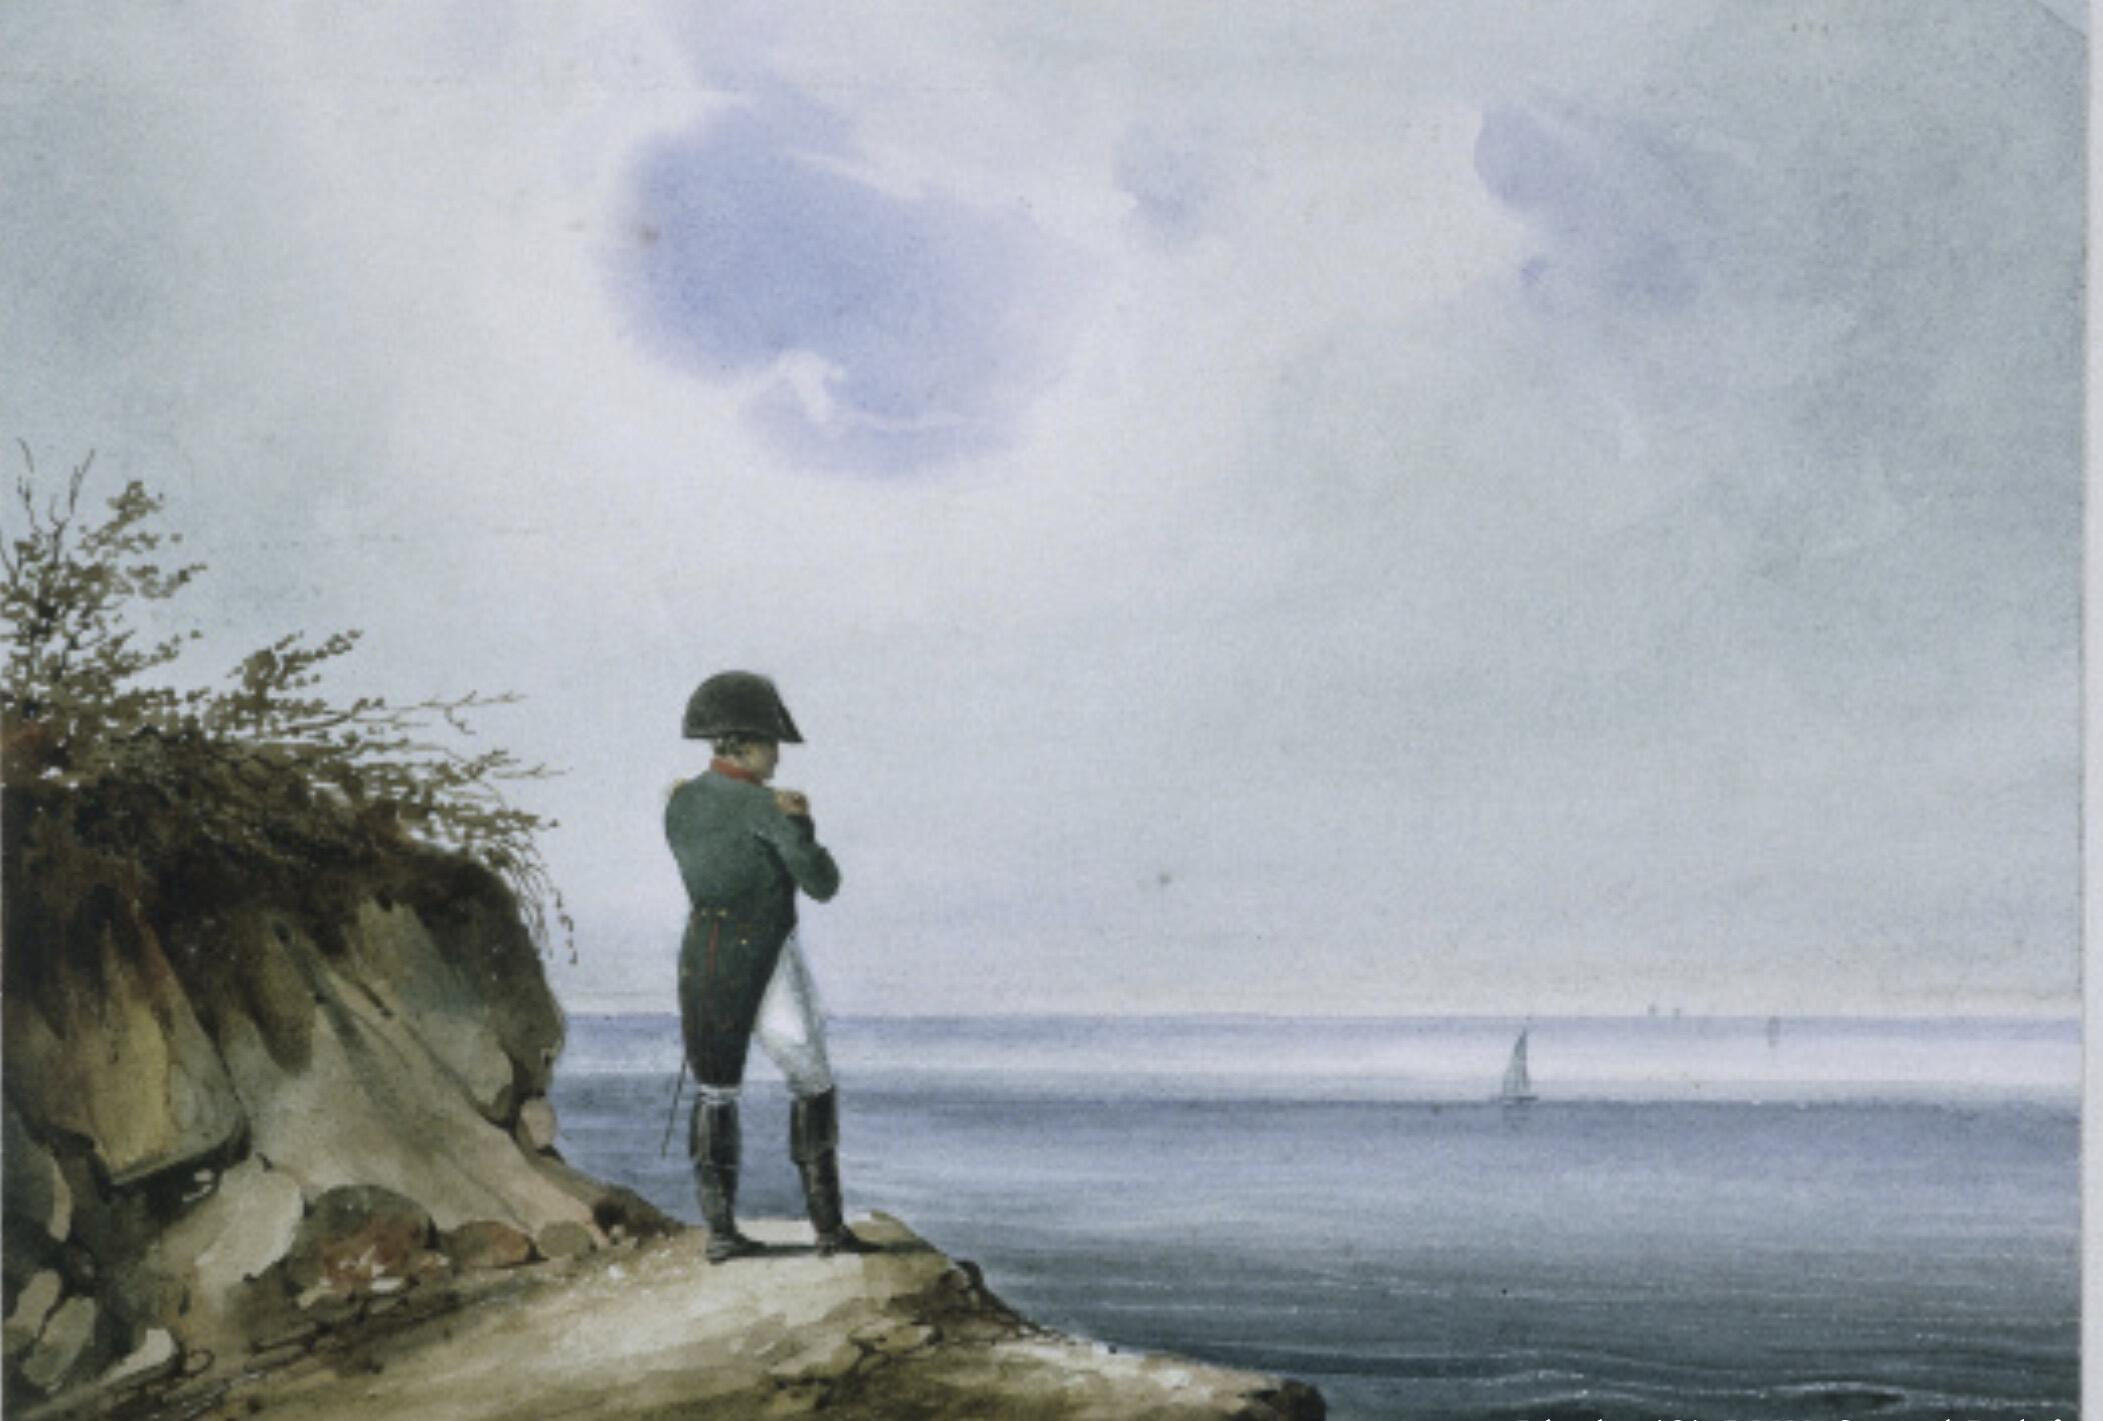 Napoléon's rich global legacy, from the Civil Code to creative arts